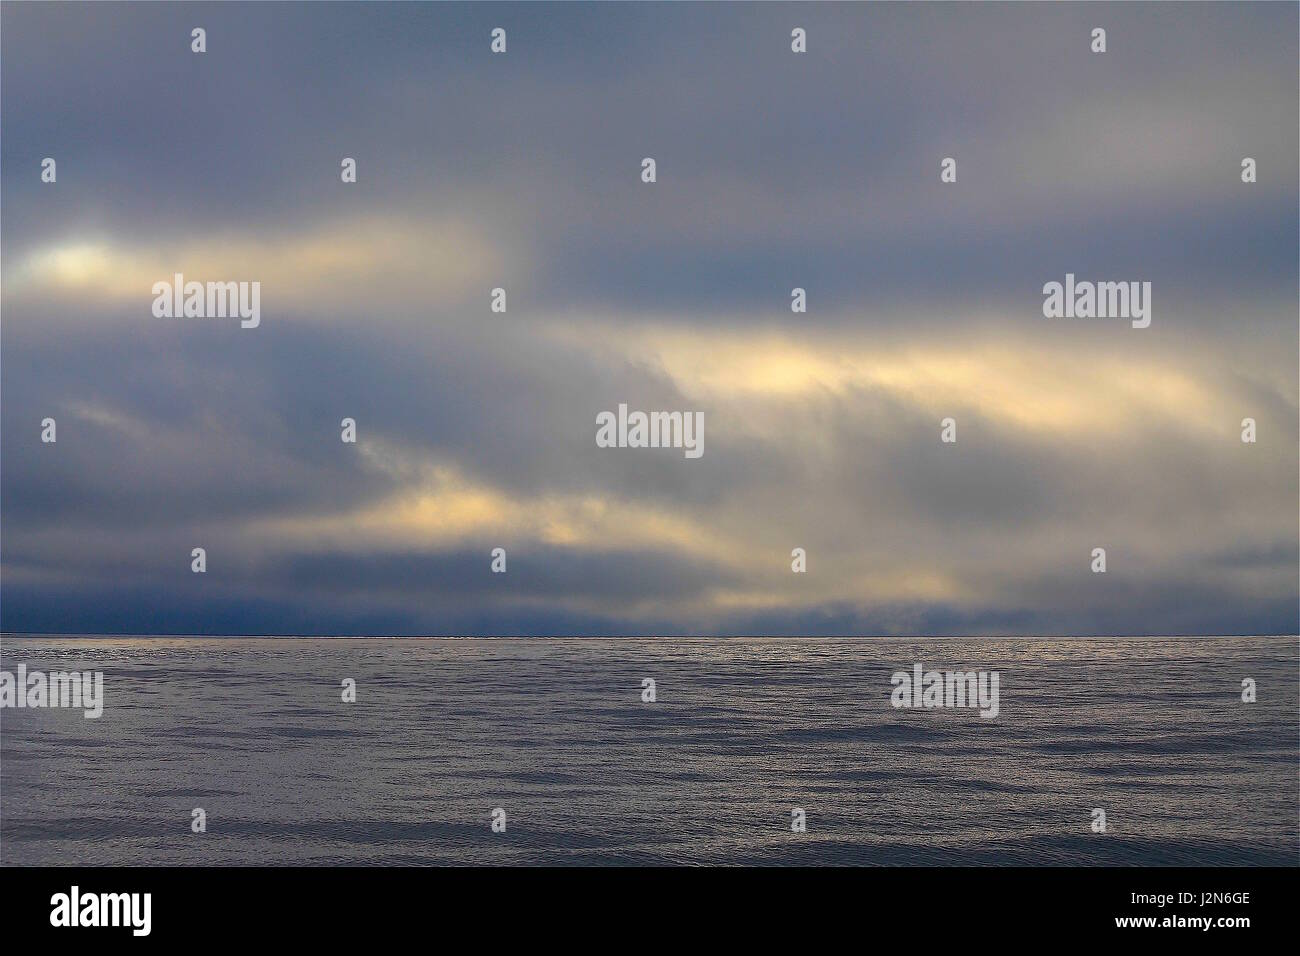 Overcast sunset at sea - Stock Image